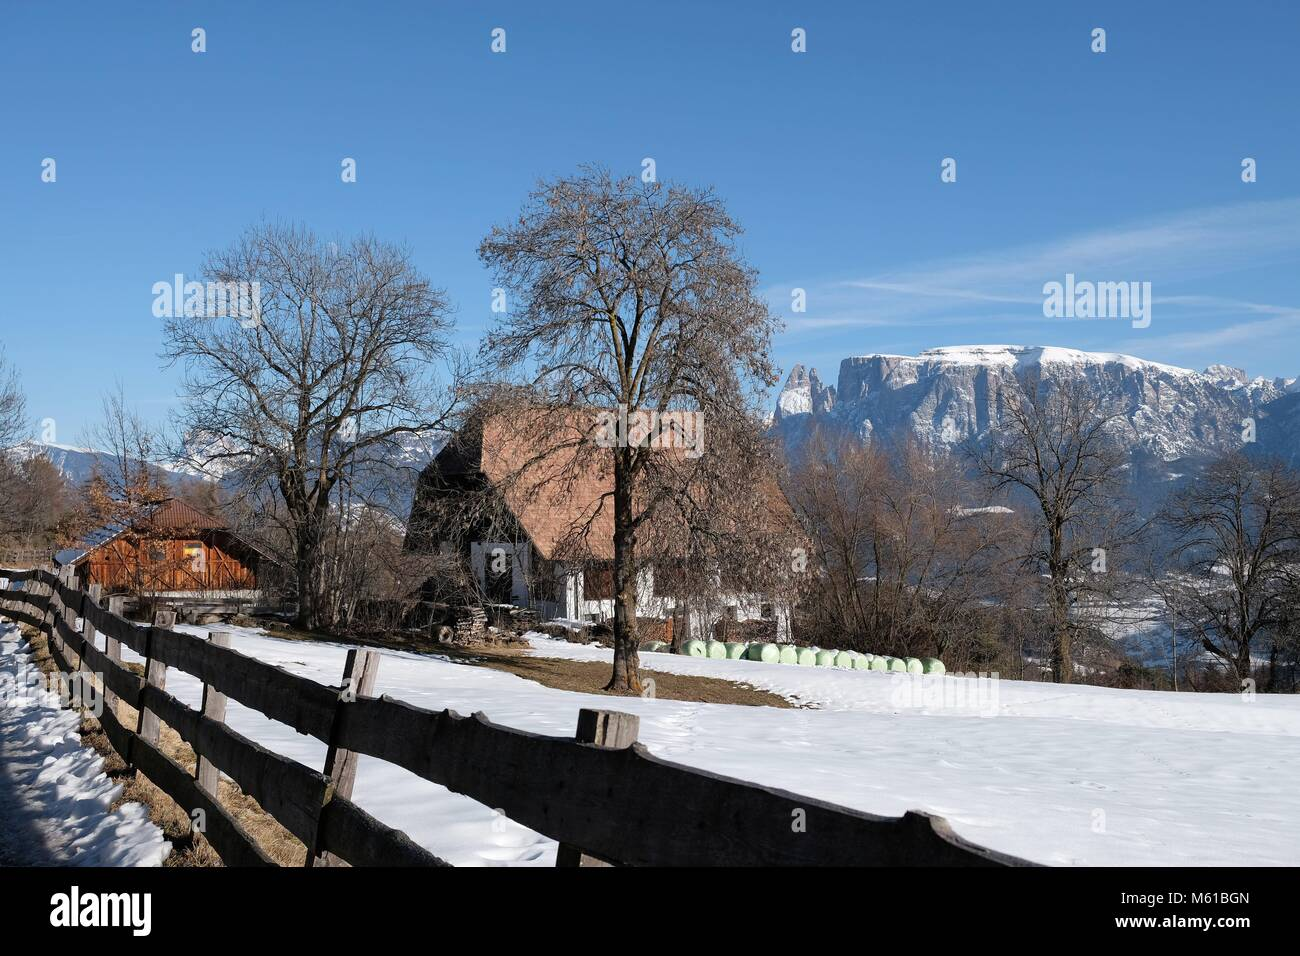 Freud Promenade on the Renon from Sopra Bolzano to Collalbo in South Tyrol - Italy in Winter - the famous psychologist - Stock Image